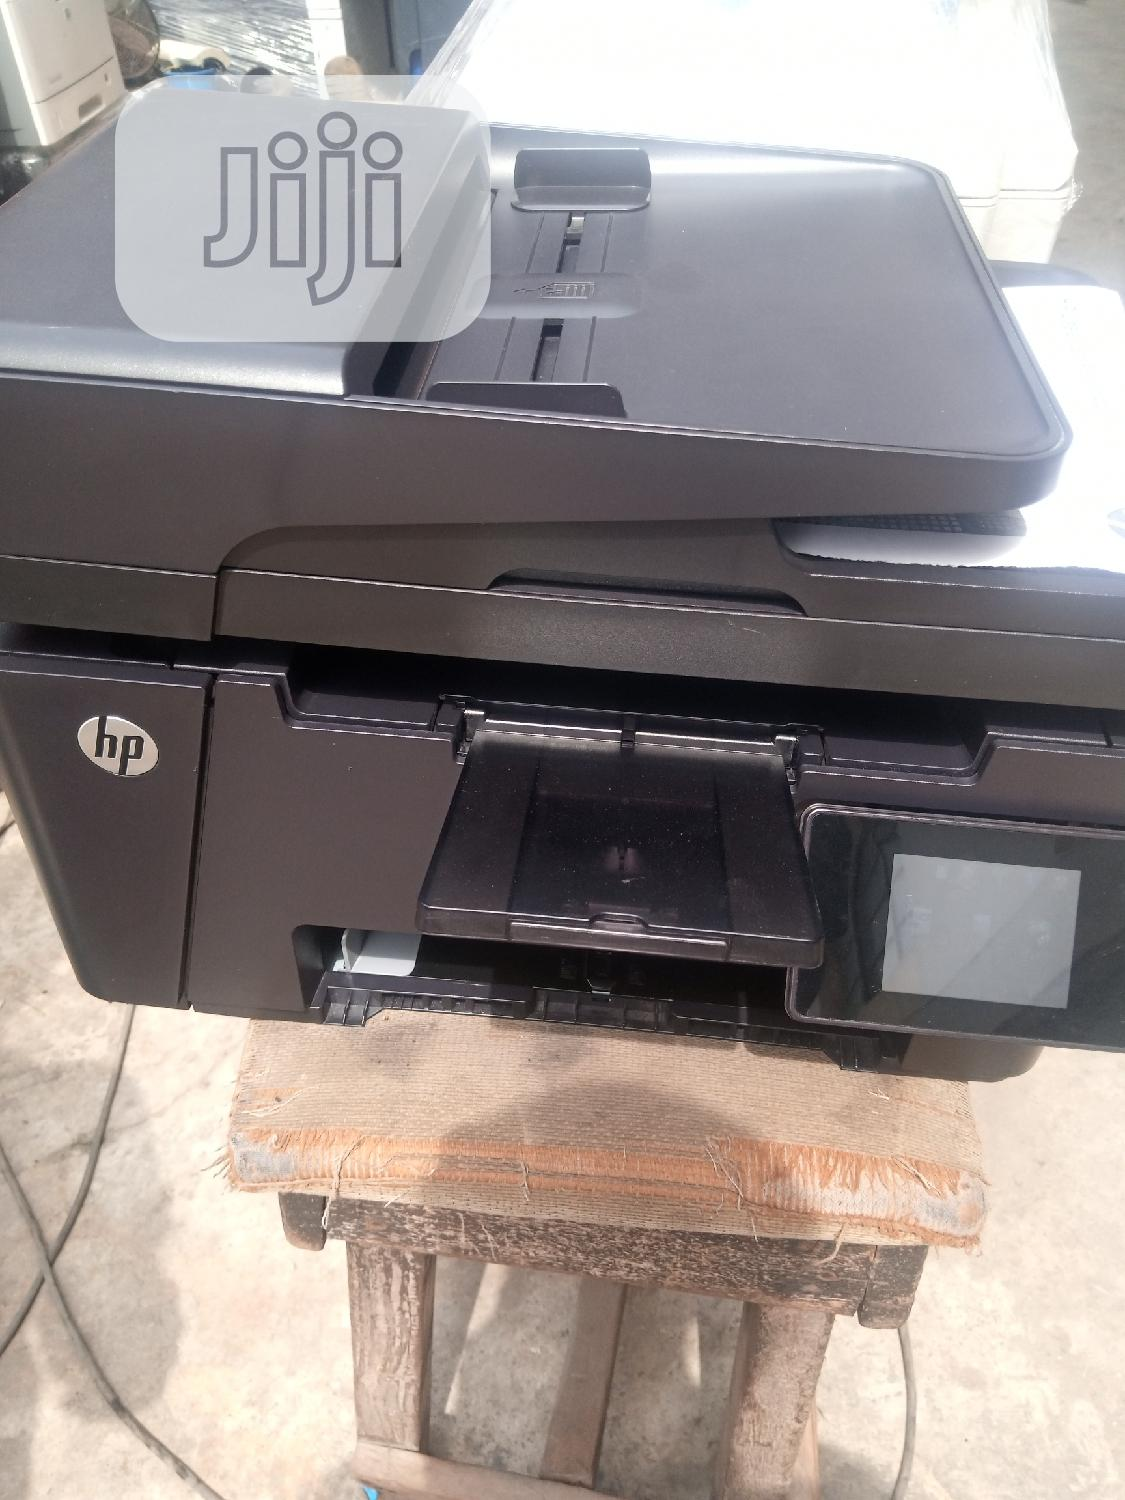 HP Laserjet Pro Mfp M127 3in1 Black And White   Printers & Scanners for sale in Surulere, Lagos State, Nigeria